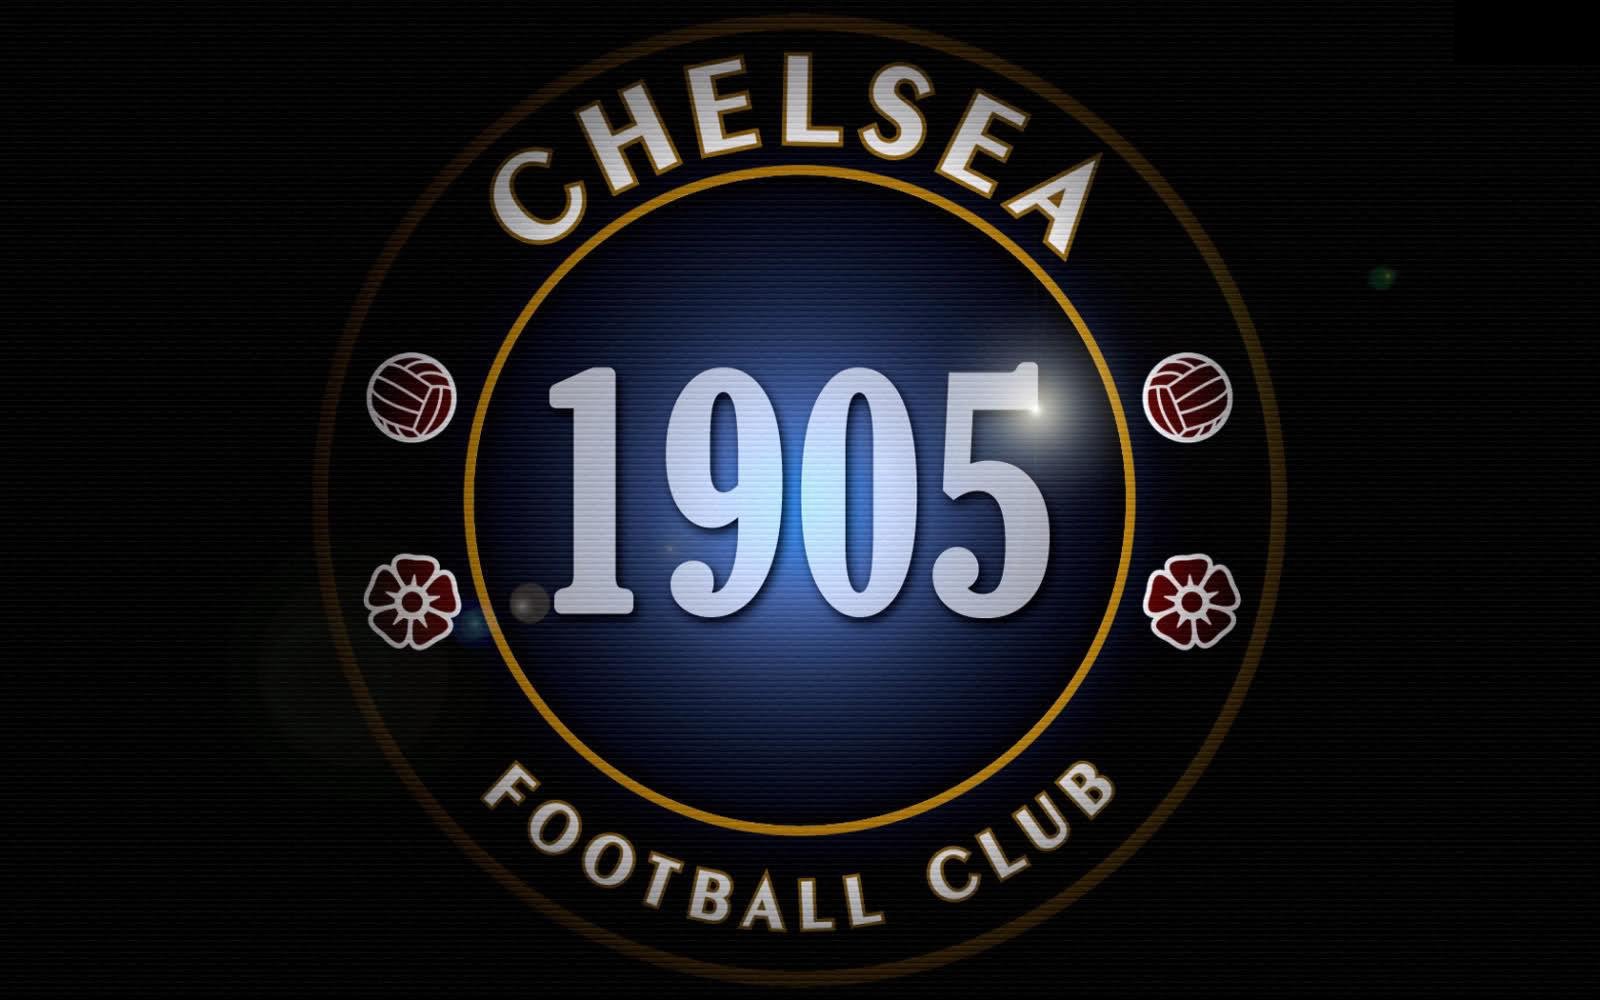 Chelsea Fc Wallpapers Animaticias Wallpaper Hd 2012 Football 1600x1000